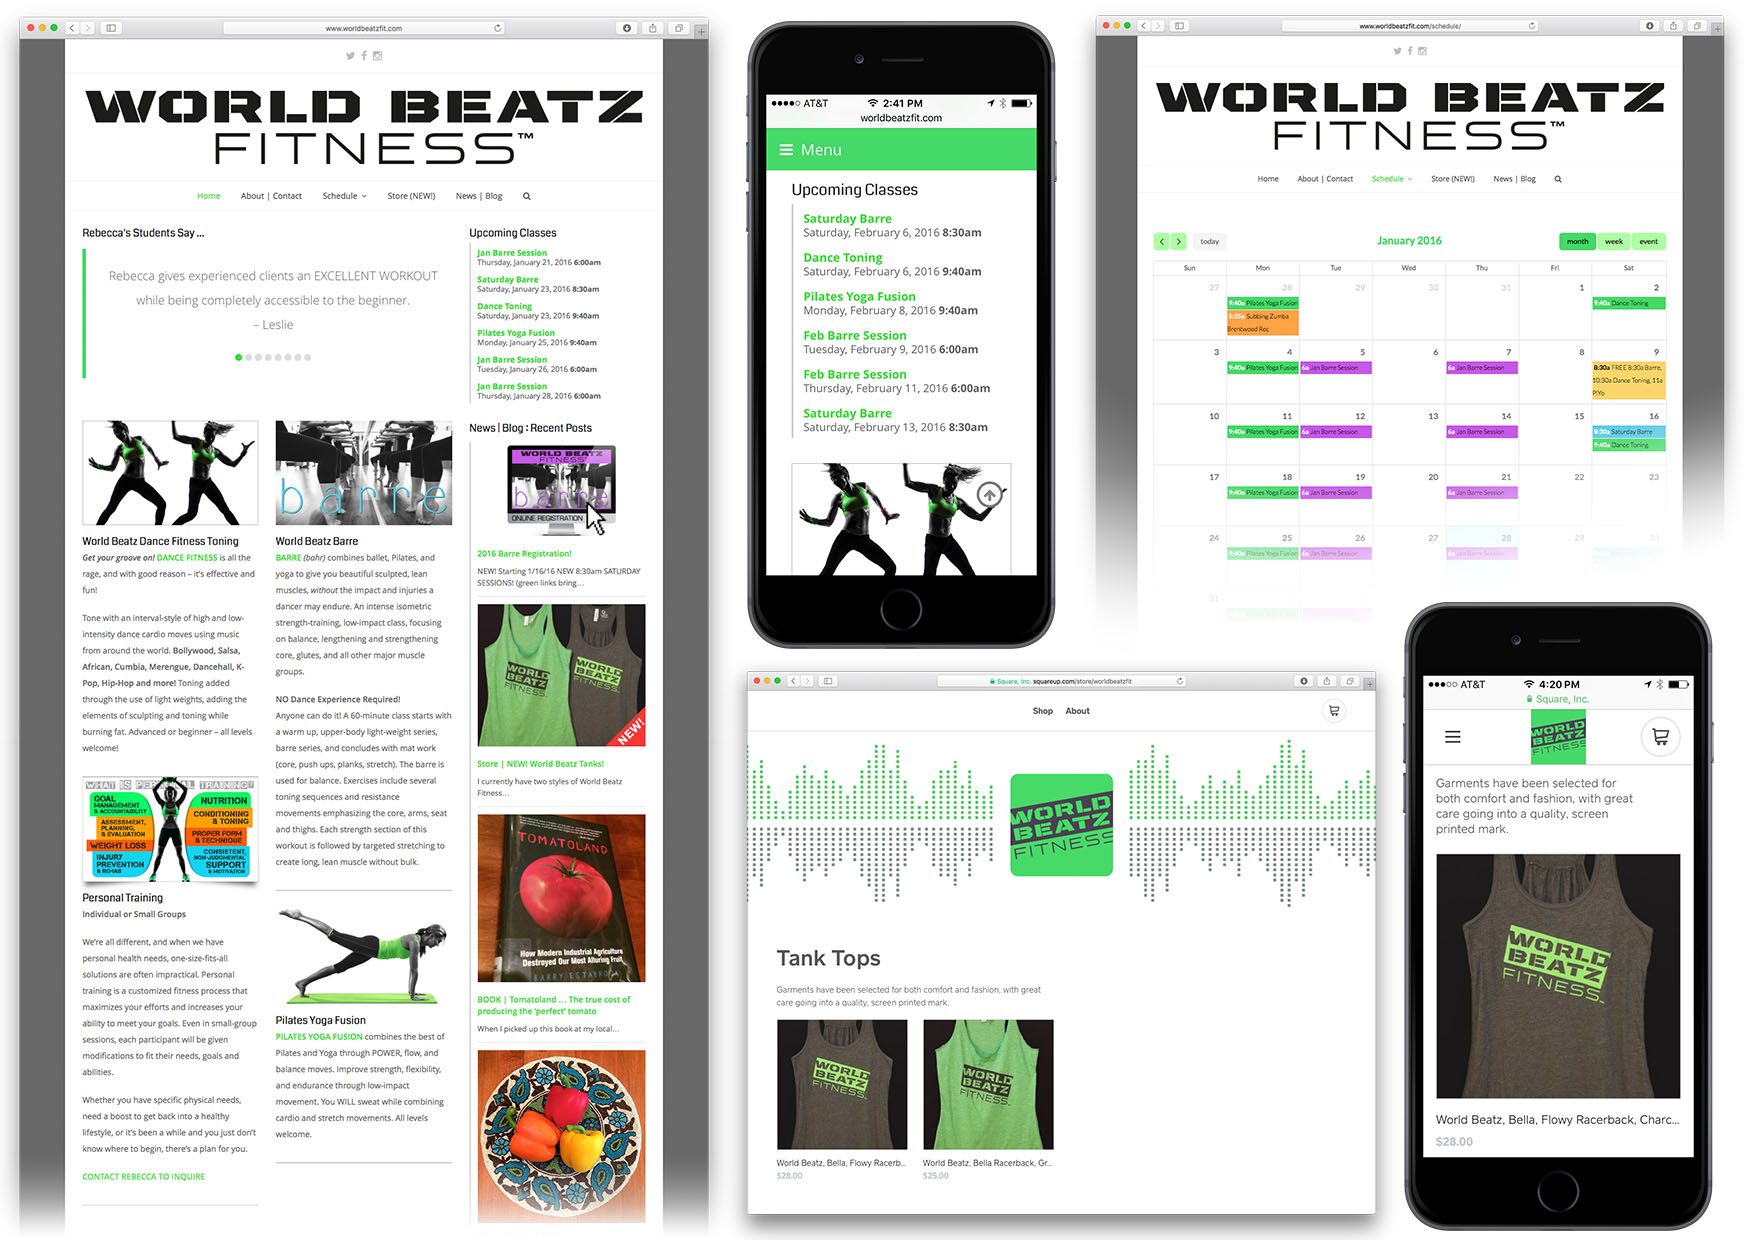 World Beatz Fitness Site